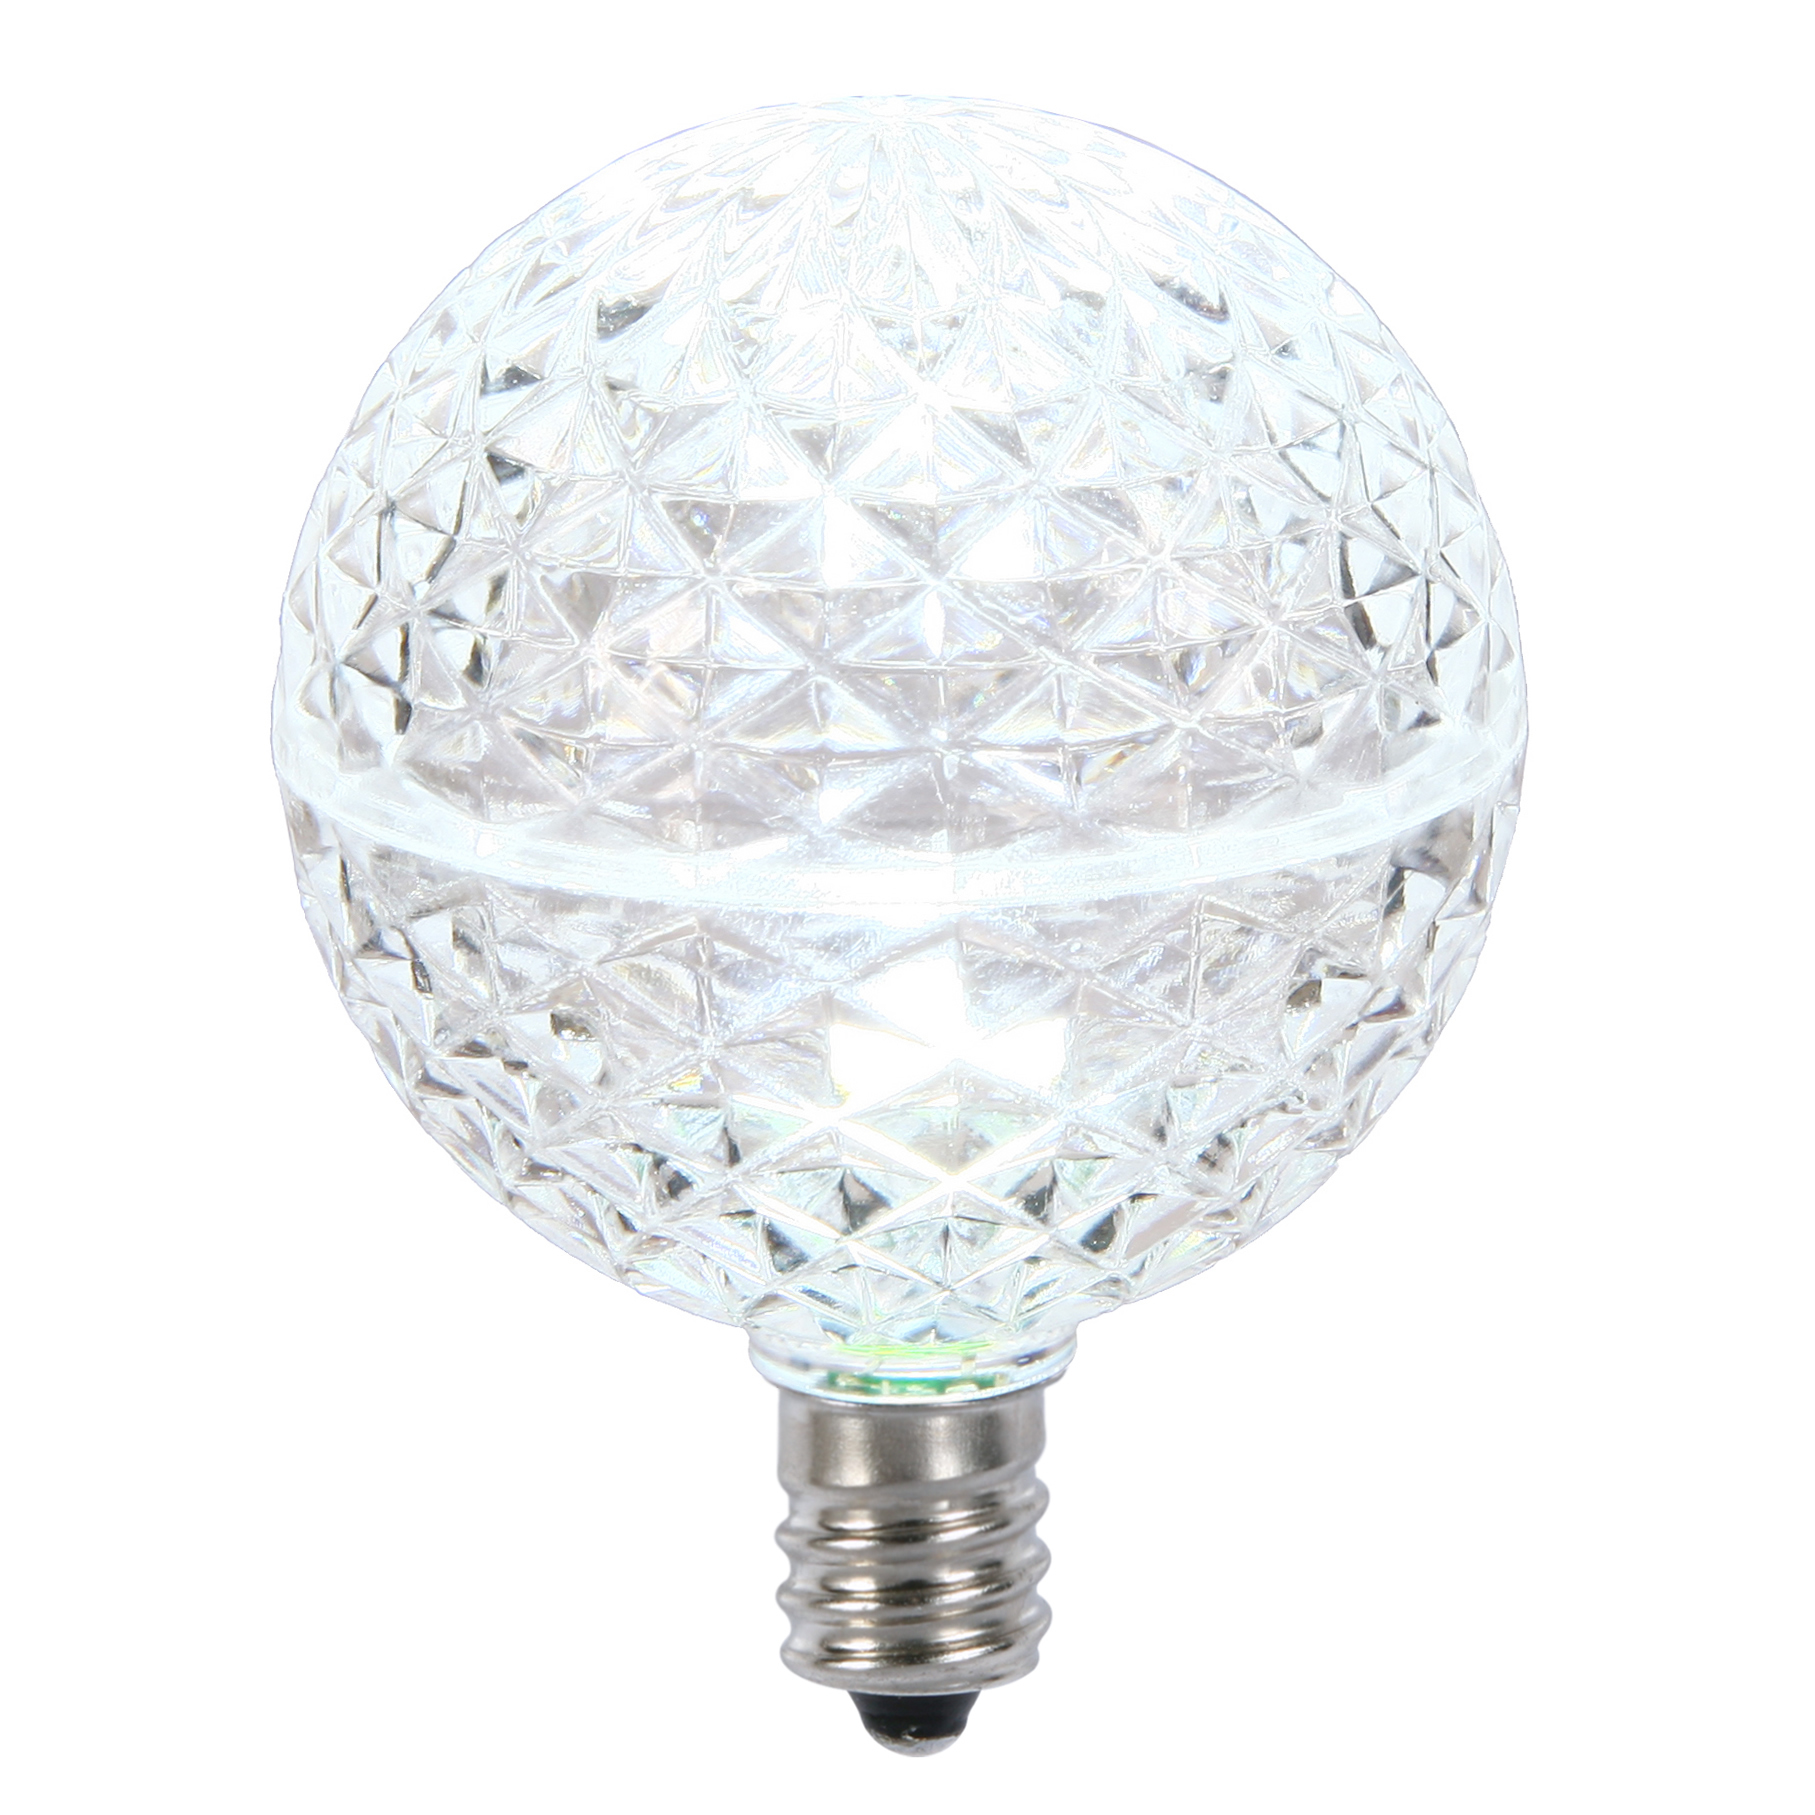 Vickerman G50 Faceted LED Cool White Replacement Bulb E12 .38W